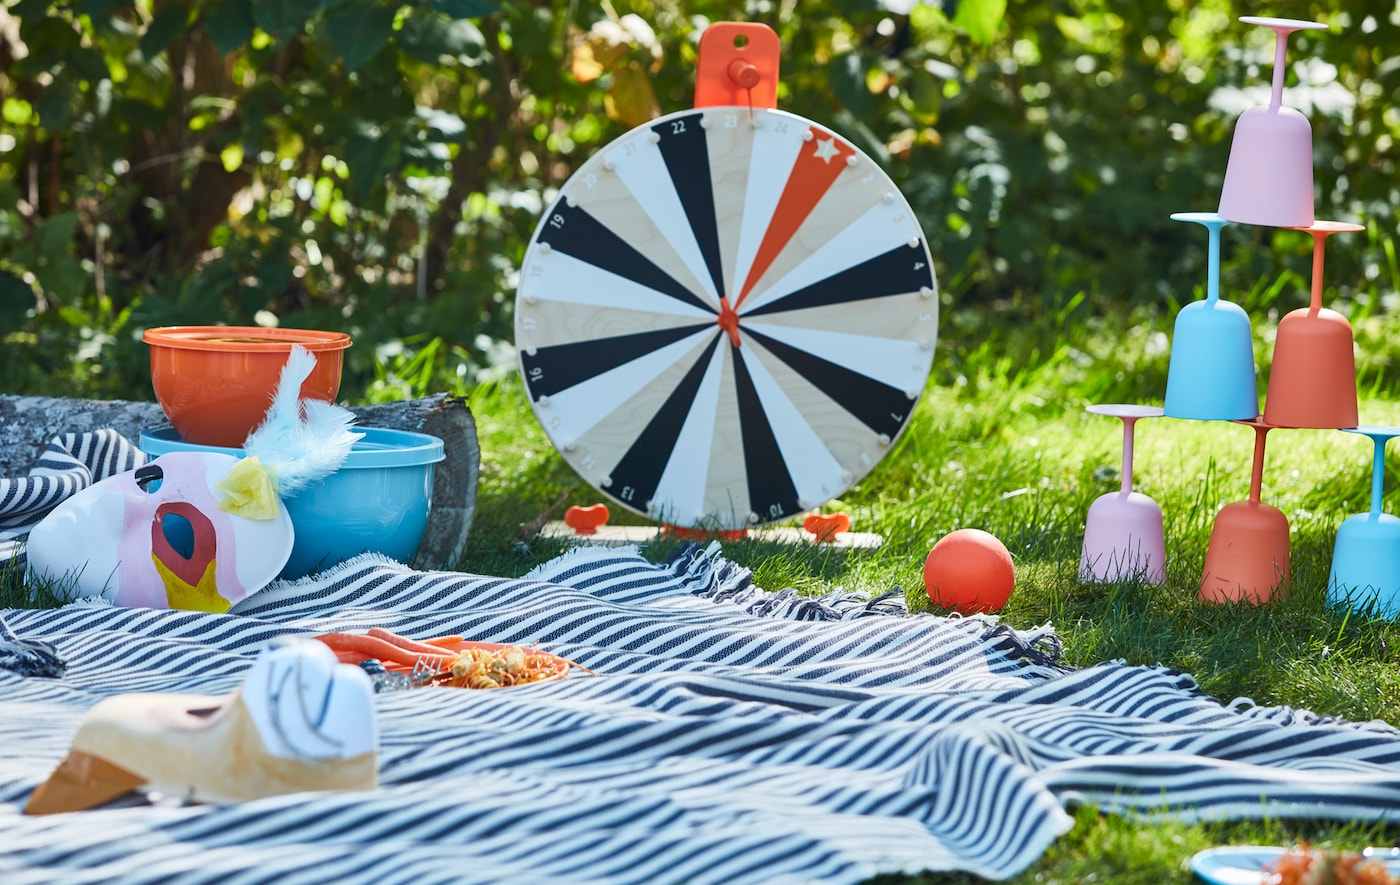 A LUSTIGT wheel of fortune game in wood among games and unbreakable tableware on a picnic blanket.